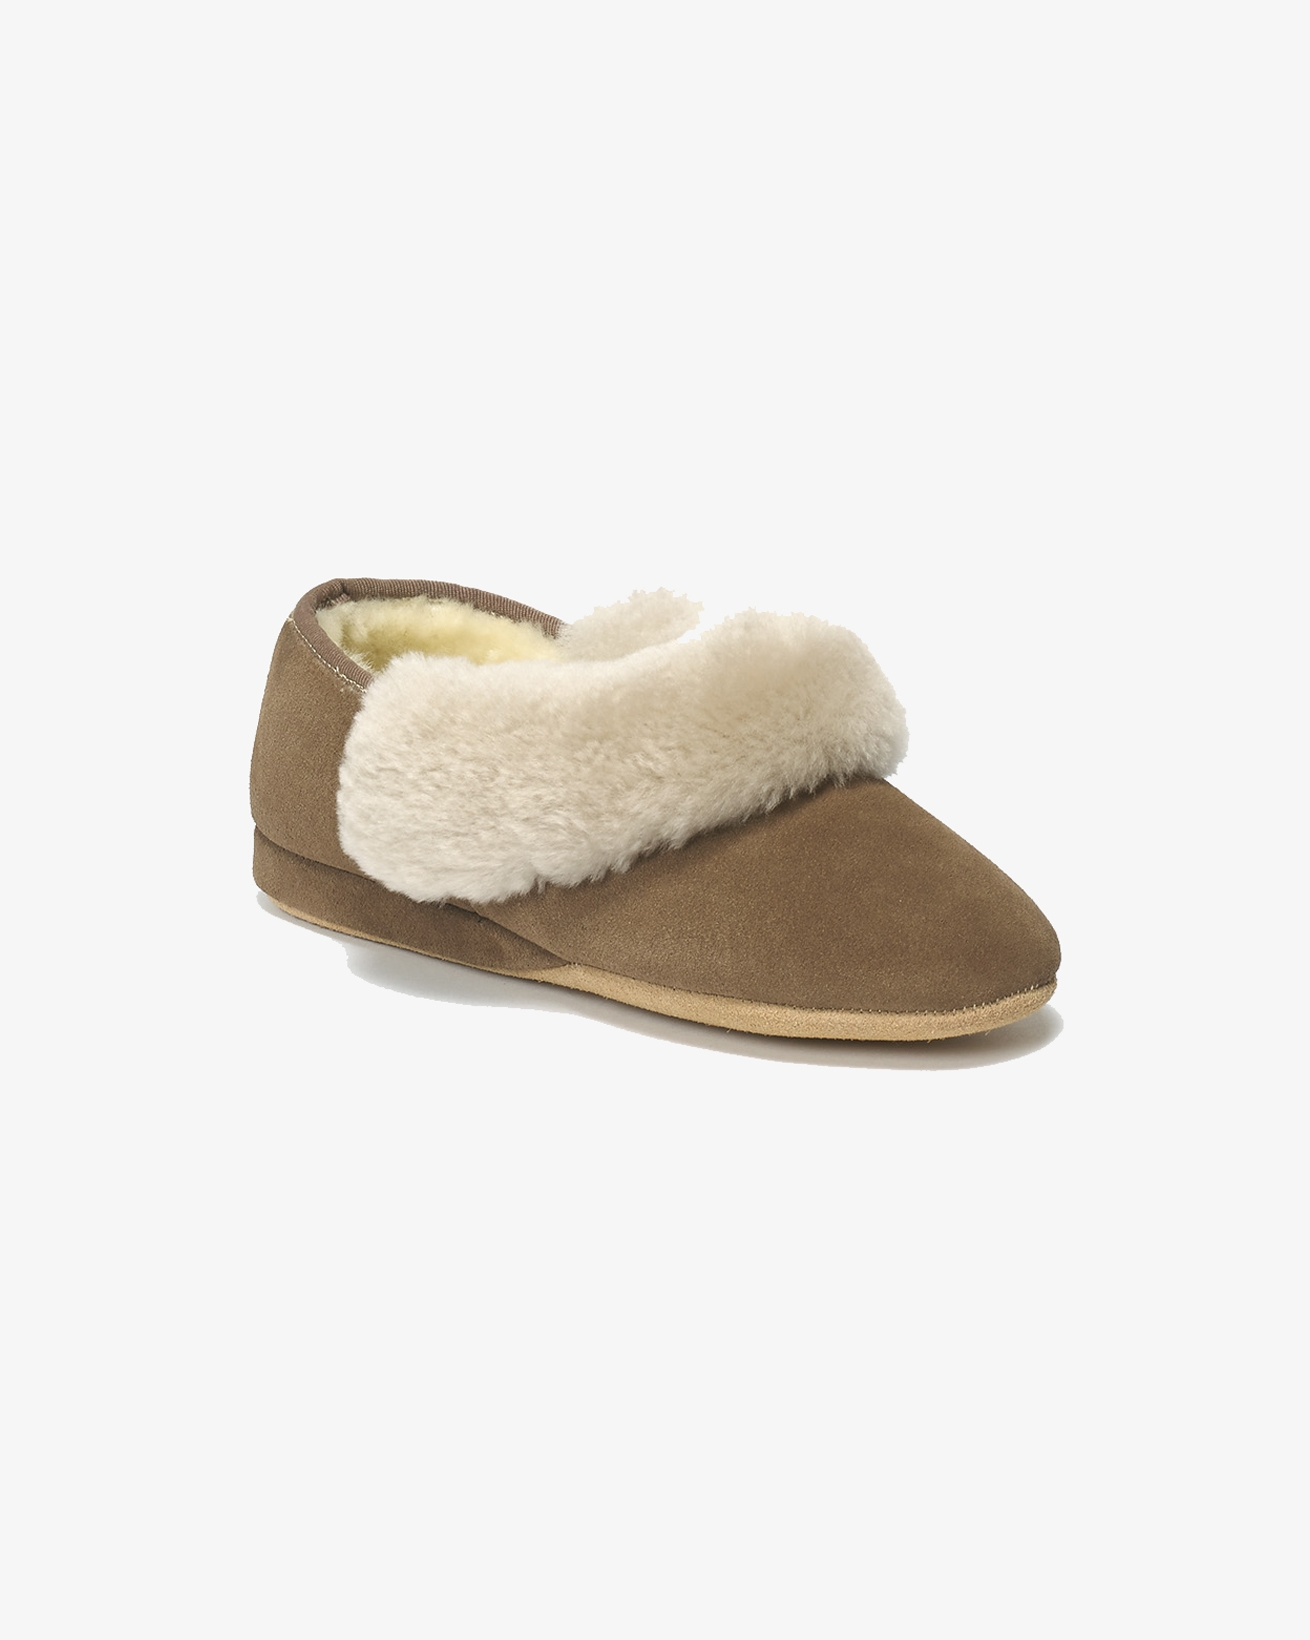 Ladies Strathmore Slipper - Size 7 - Mole